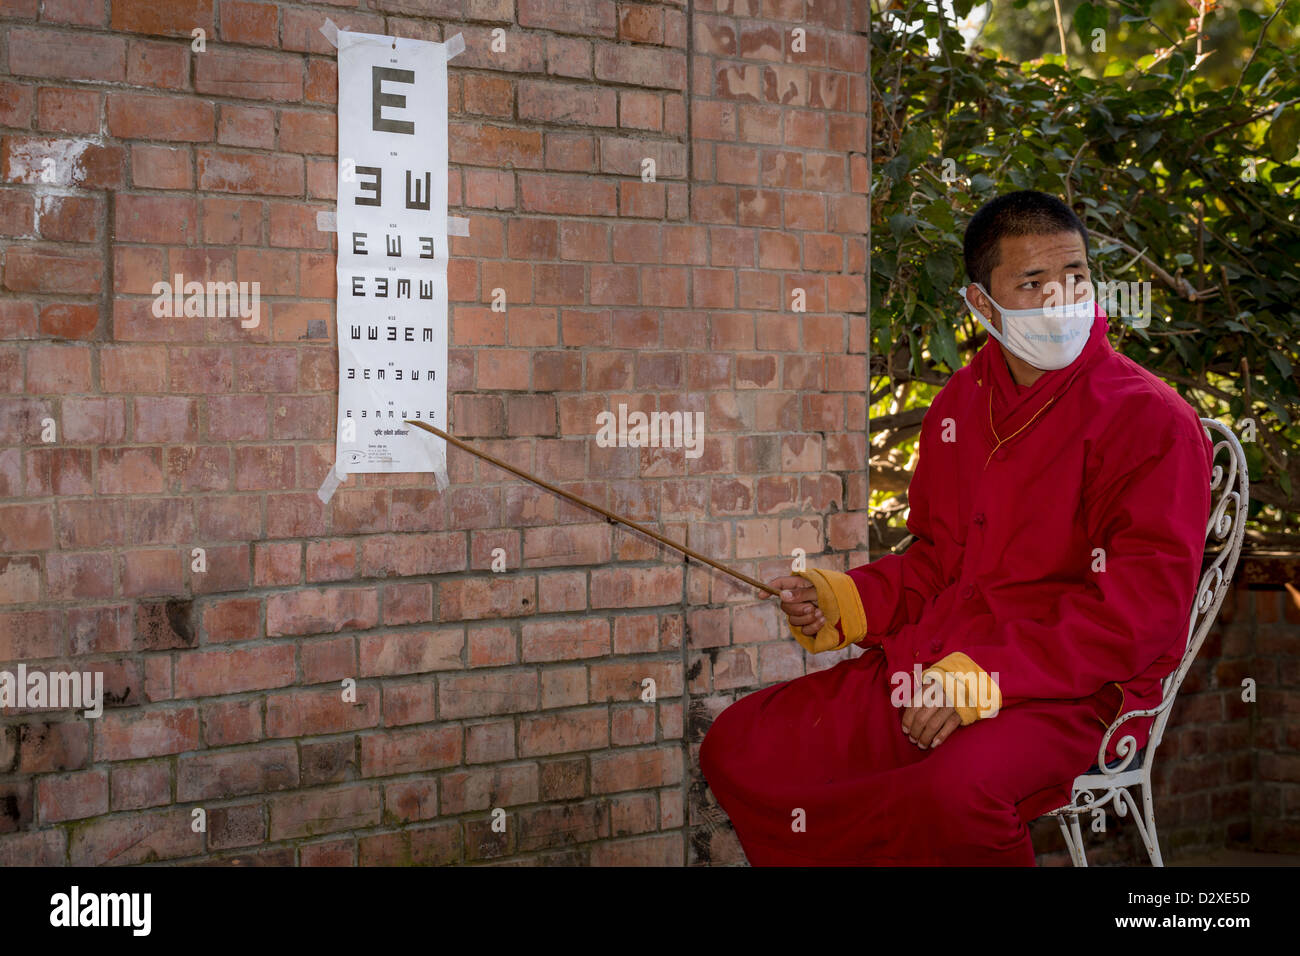 A monk from the Amitabha Monastery caring out a charity vision test for poor villagers. Amitabha Monastery, Nepal, - Stock Image